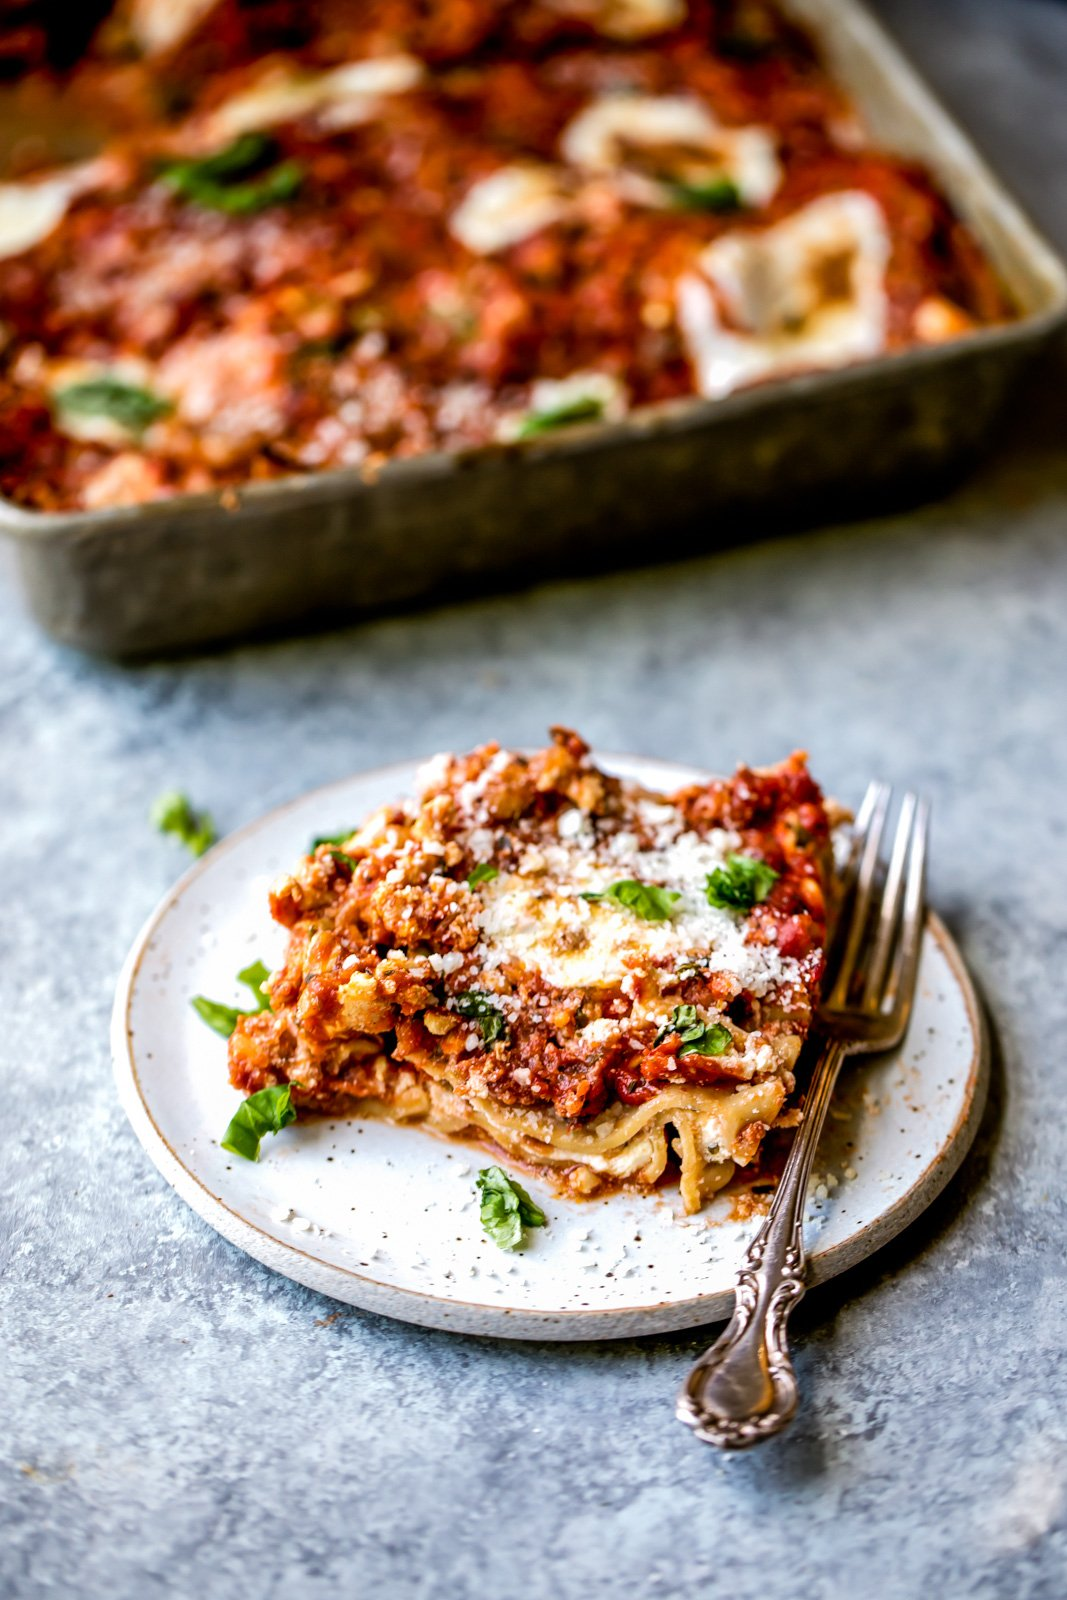 turkey lasagna on a plate with a fork and a pan of lasagna in the background